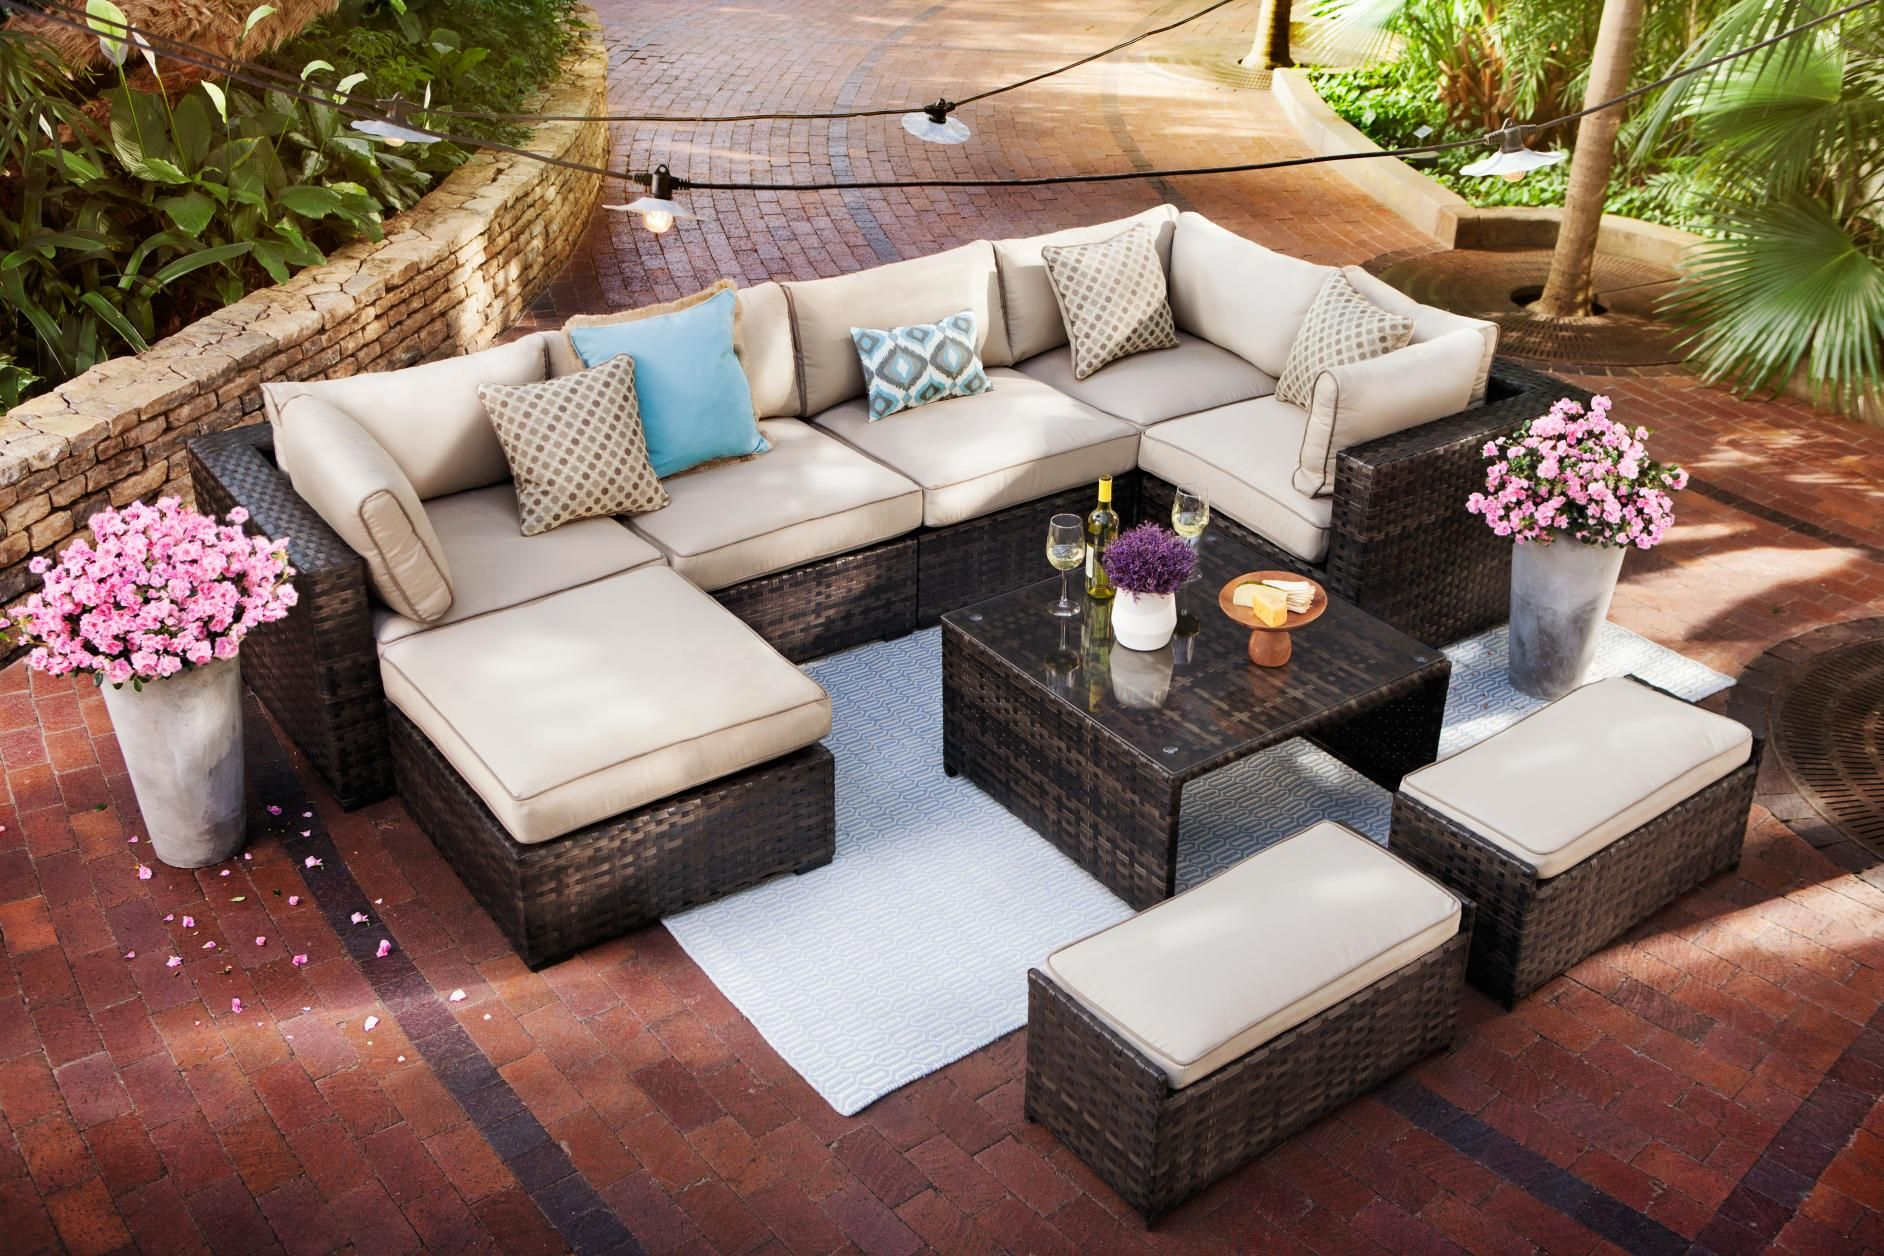 Our regatta is stunning and perfect for your outdoor set up